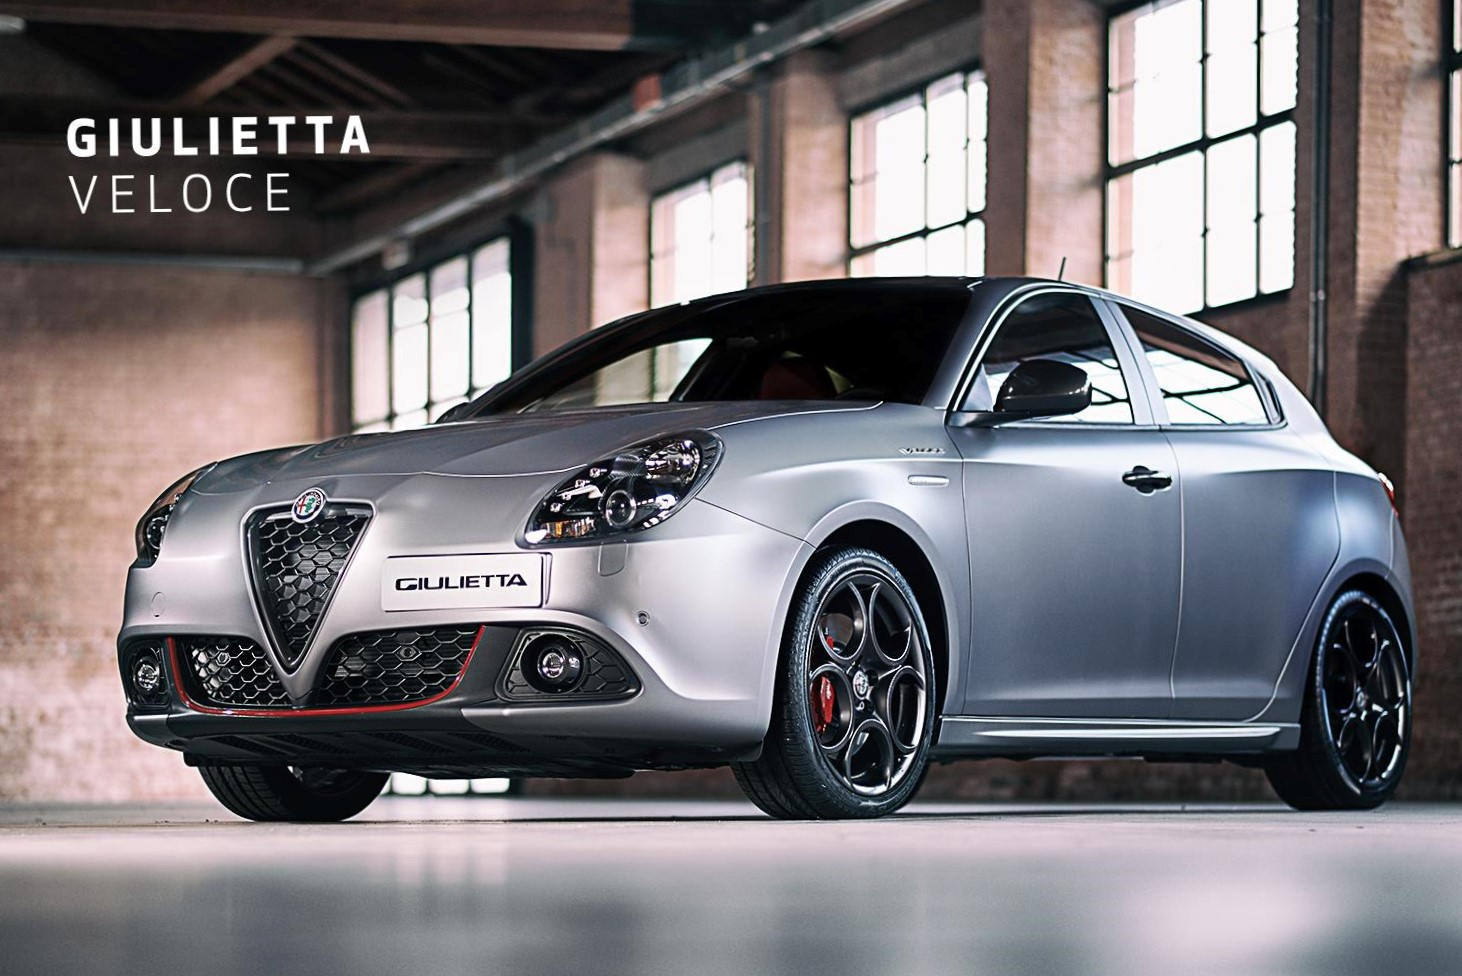 alfa romeo argentina ya vende el giulietta quadrifoglio veloce 240 cv automotiva. Black Bedroom Furniture Sets. Home Design Ideas